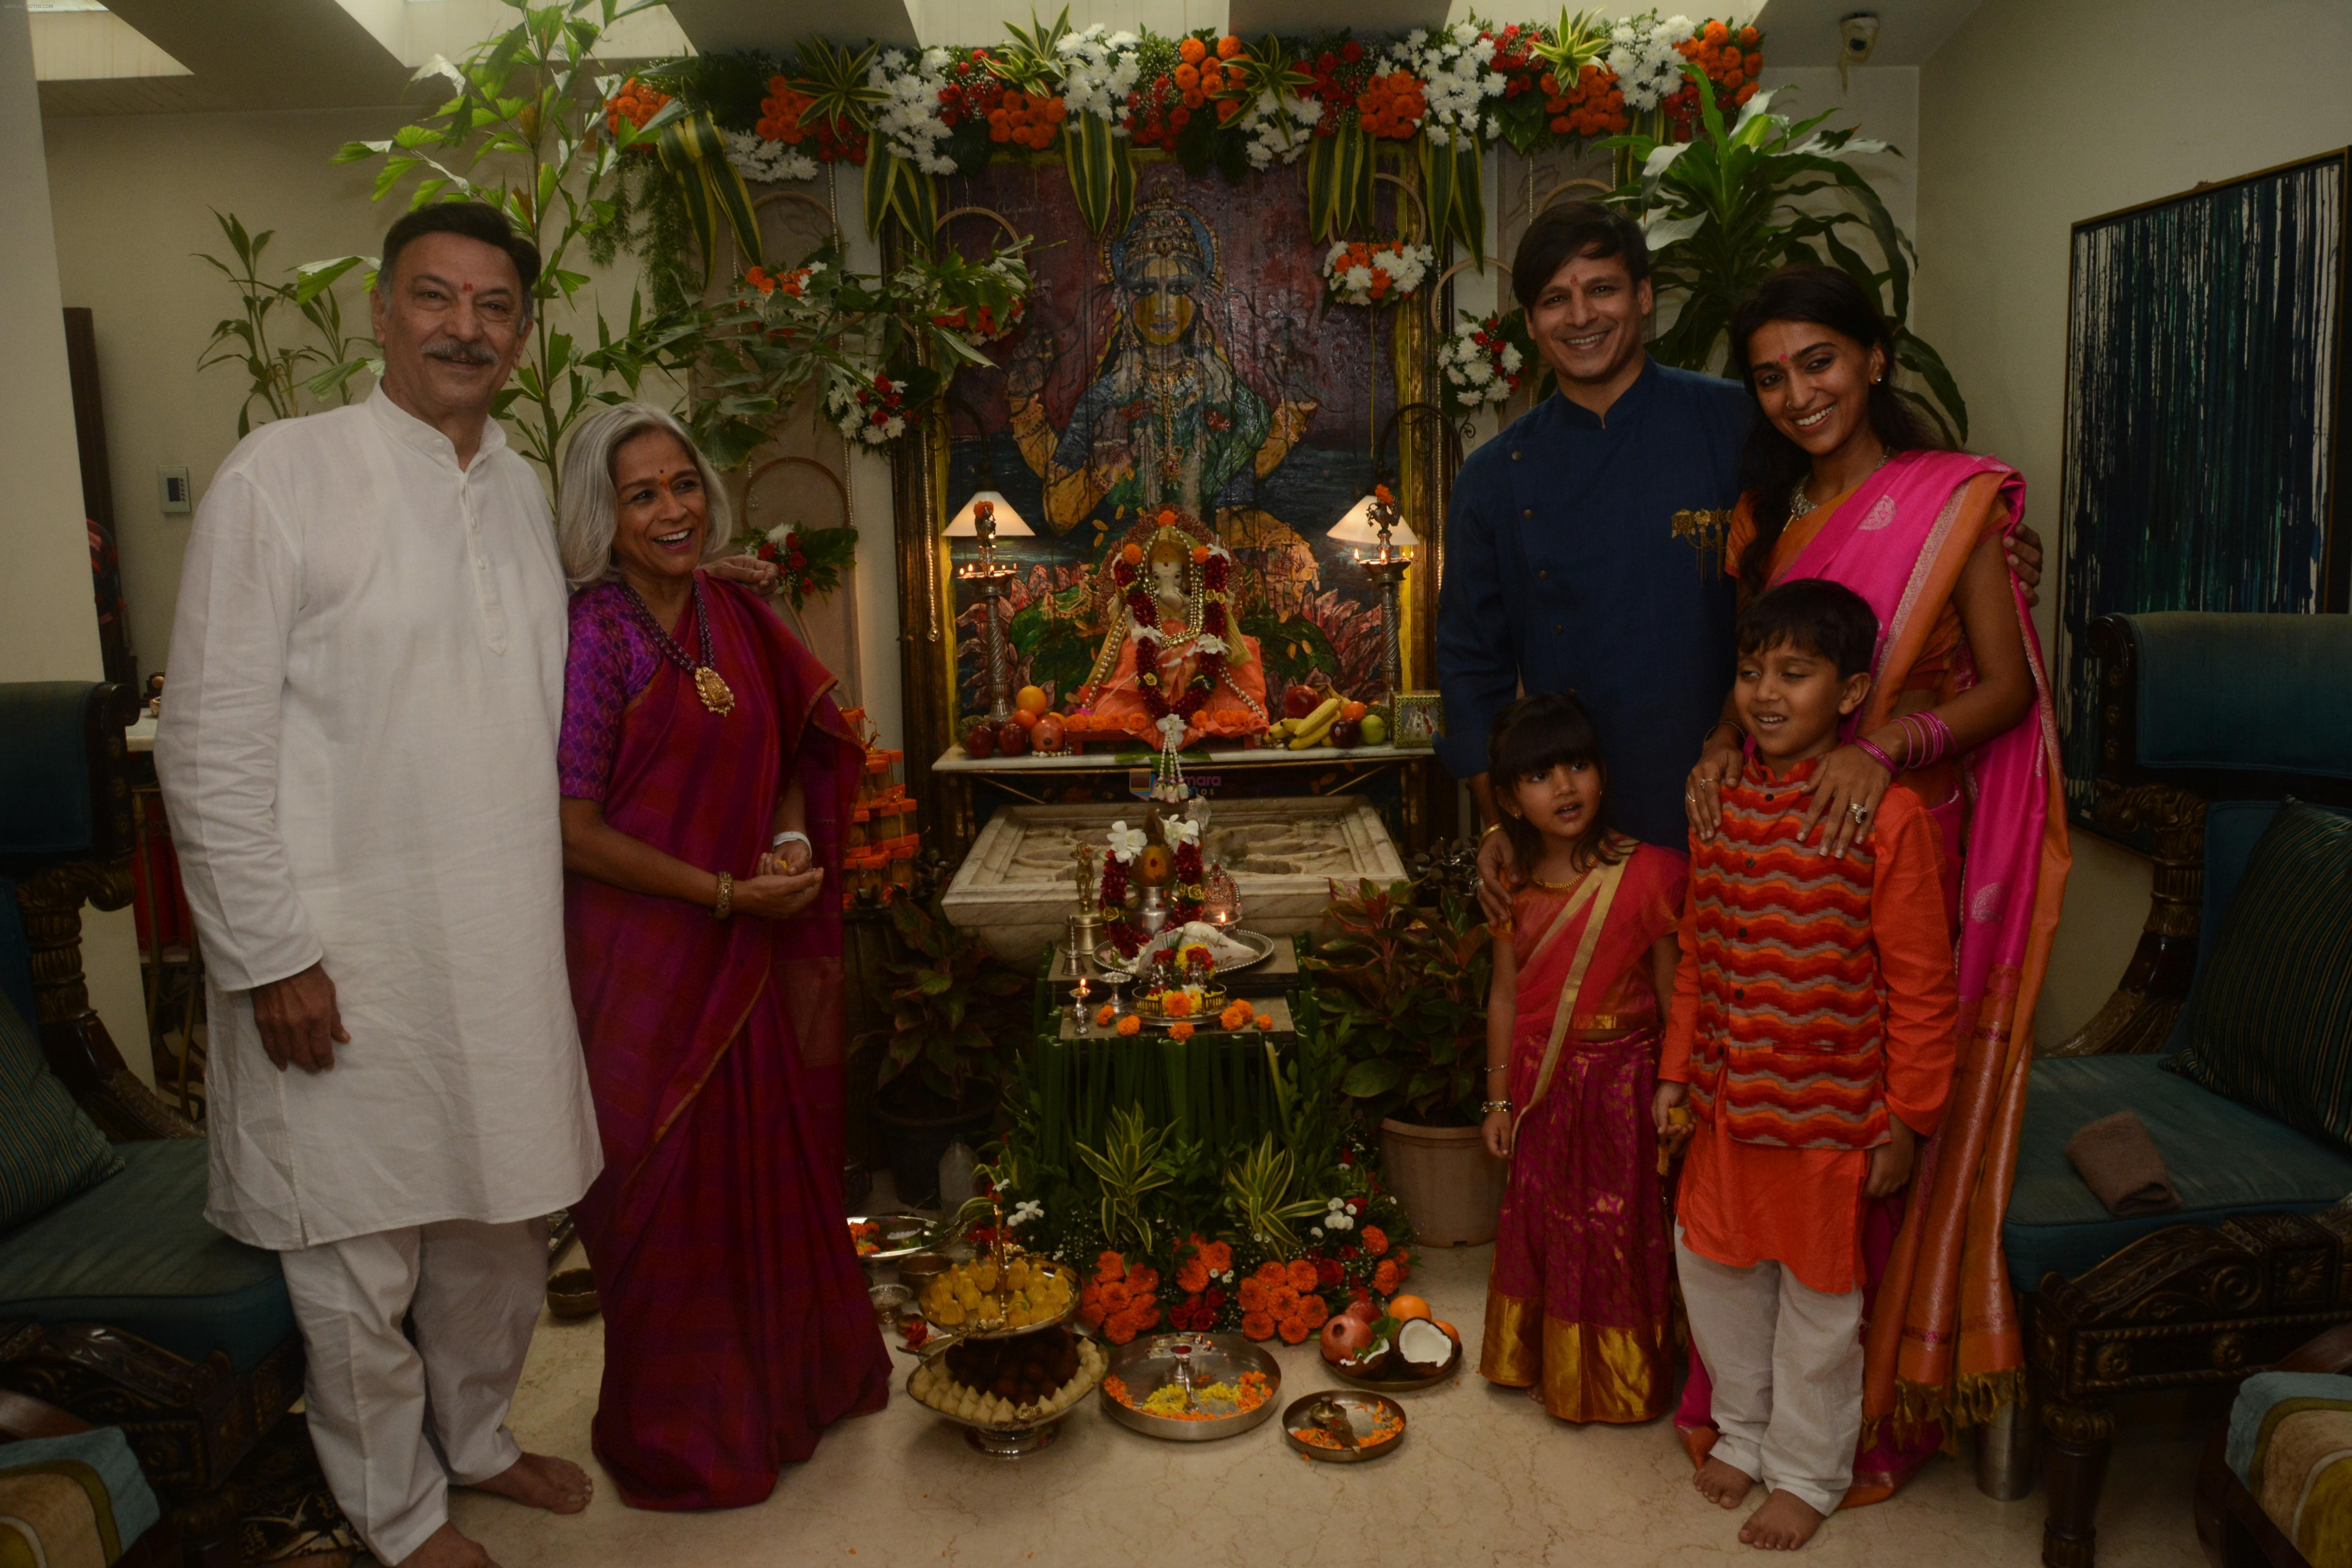 Vivek Oberoi's Ganpati celebration at his house on 2nd Sept 2019